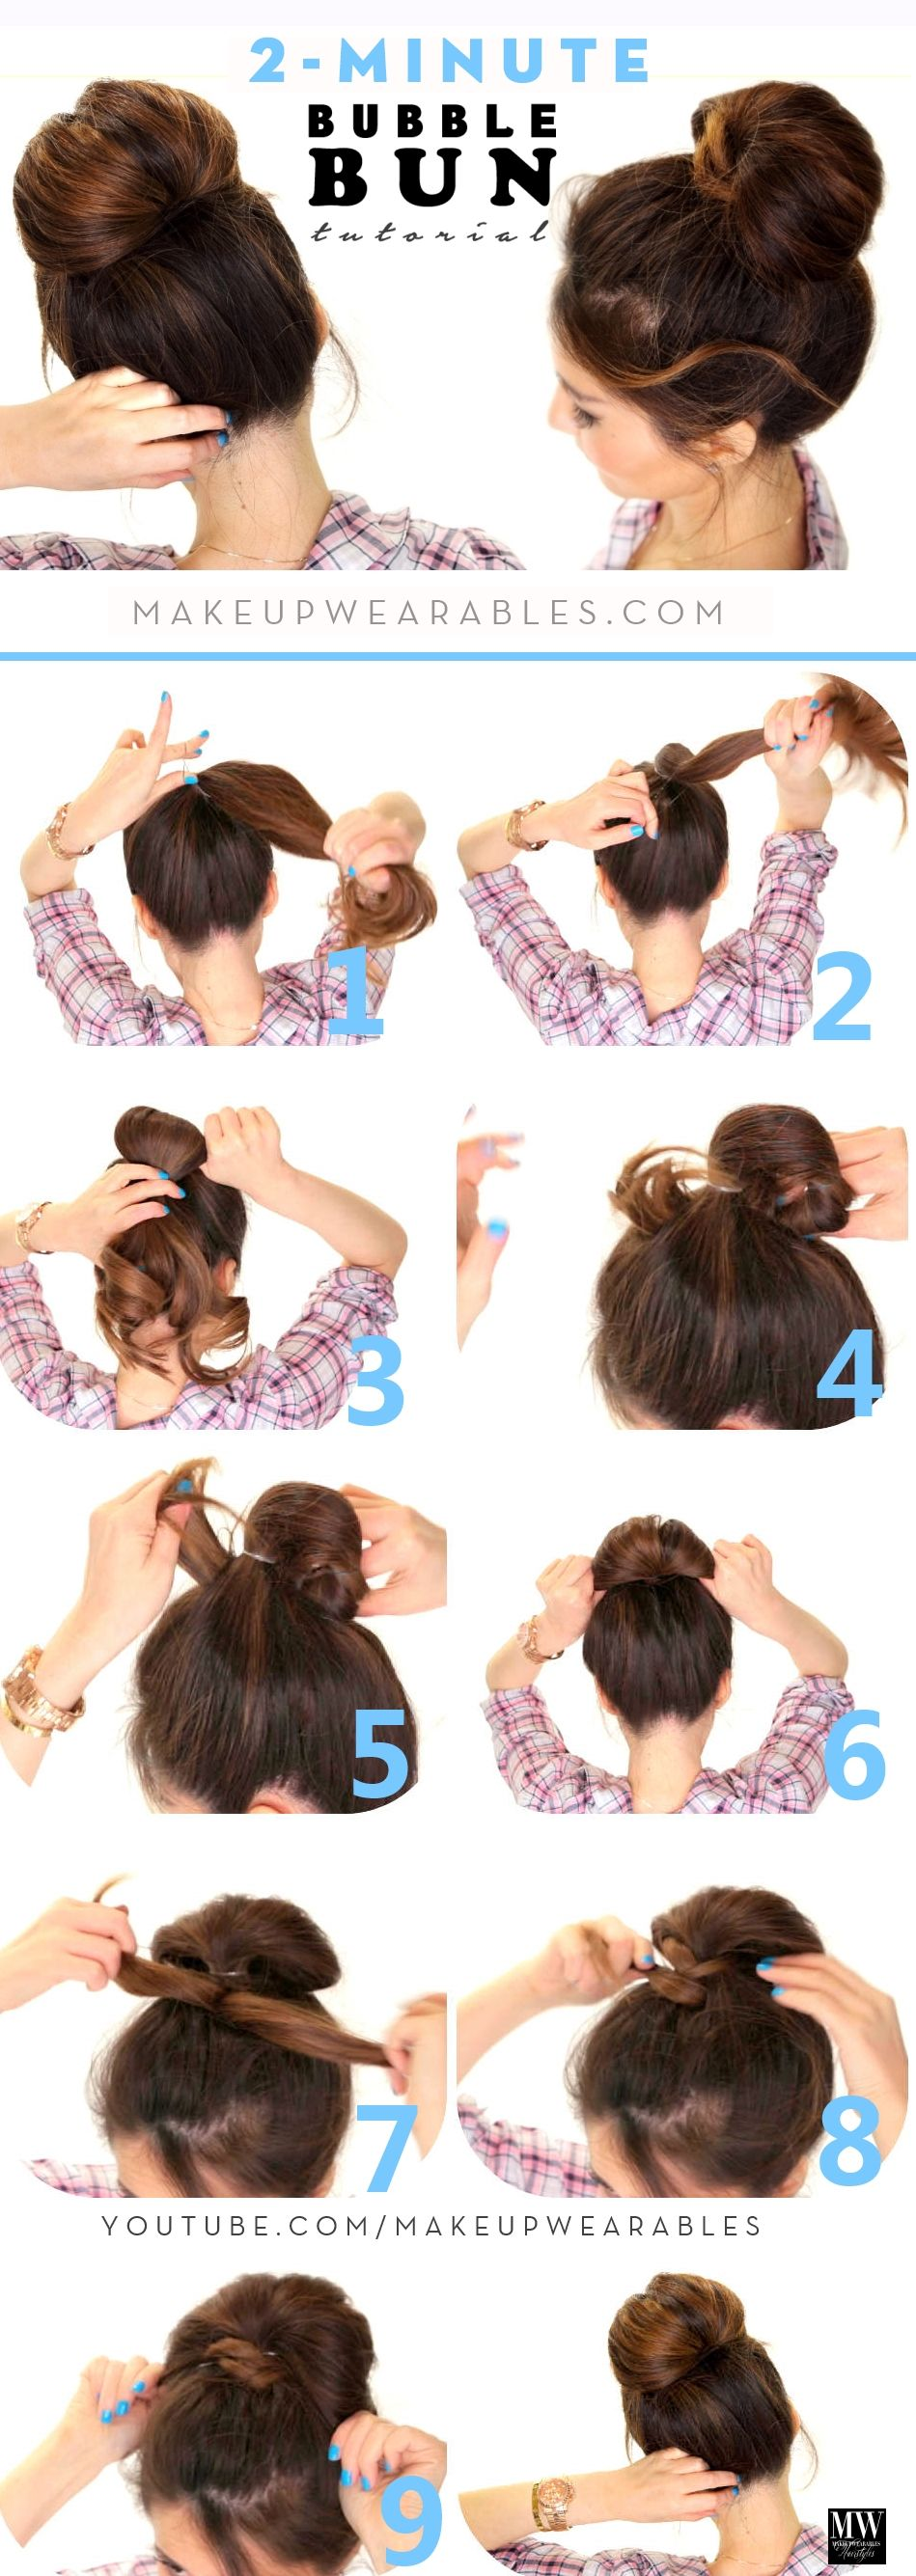 Surprising 1000 Images About Hairstyles On Pinterest Hairstyles For Women Draintrainus